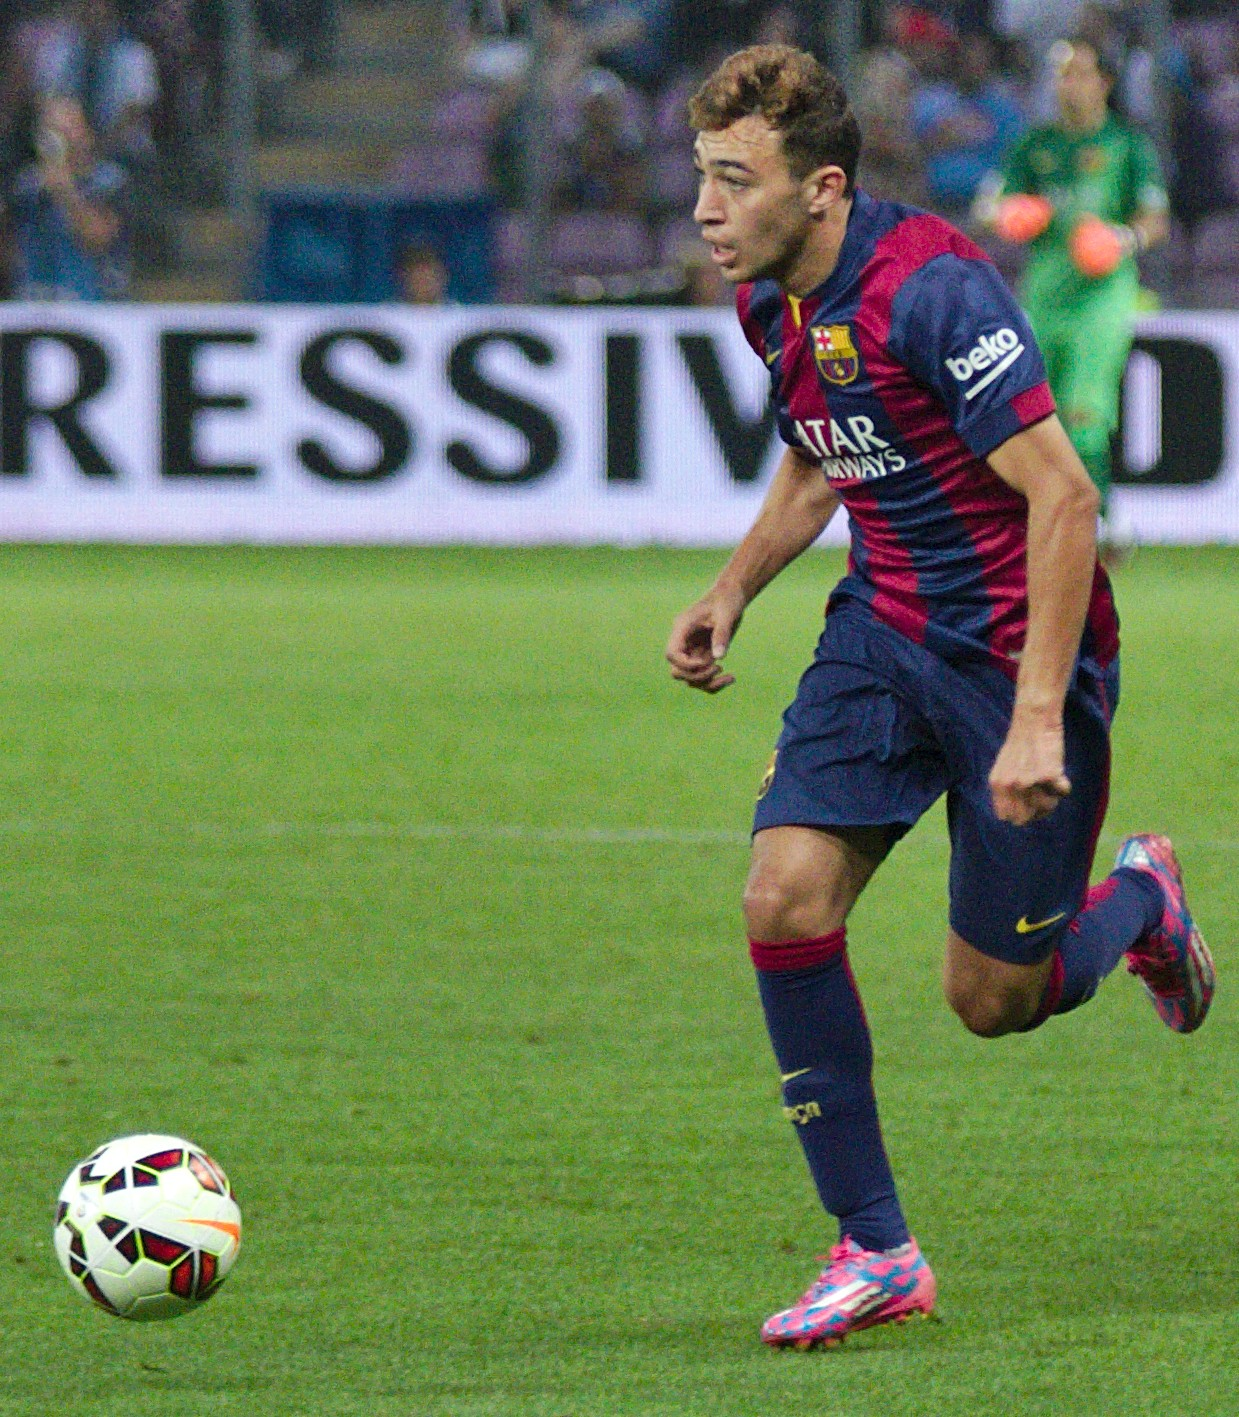 "Munir Barcelona ""Barça - Napoli - 20140806 - 27 - Munir el Haddadi cropped 1"" by Clément Bucco-Lechat - Own work. Licensed under Creative Commons Attribution-Share Alike 3.0 via Wikimedia Commons - http://commons.wikimedia.org/wiki/File:Bar%C3%A7a_-_Napoli_-_20140806_-_27_-_Munir_el_Haddadi_cropped_1.jpg#mediaviewer/File:Bar%C3%A7a_-_Napoli_-_20140806_-_27_-_Munir_el_Haddadi_cropped_1.jpg"